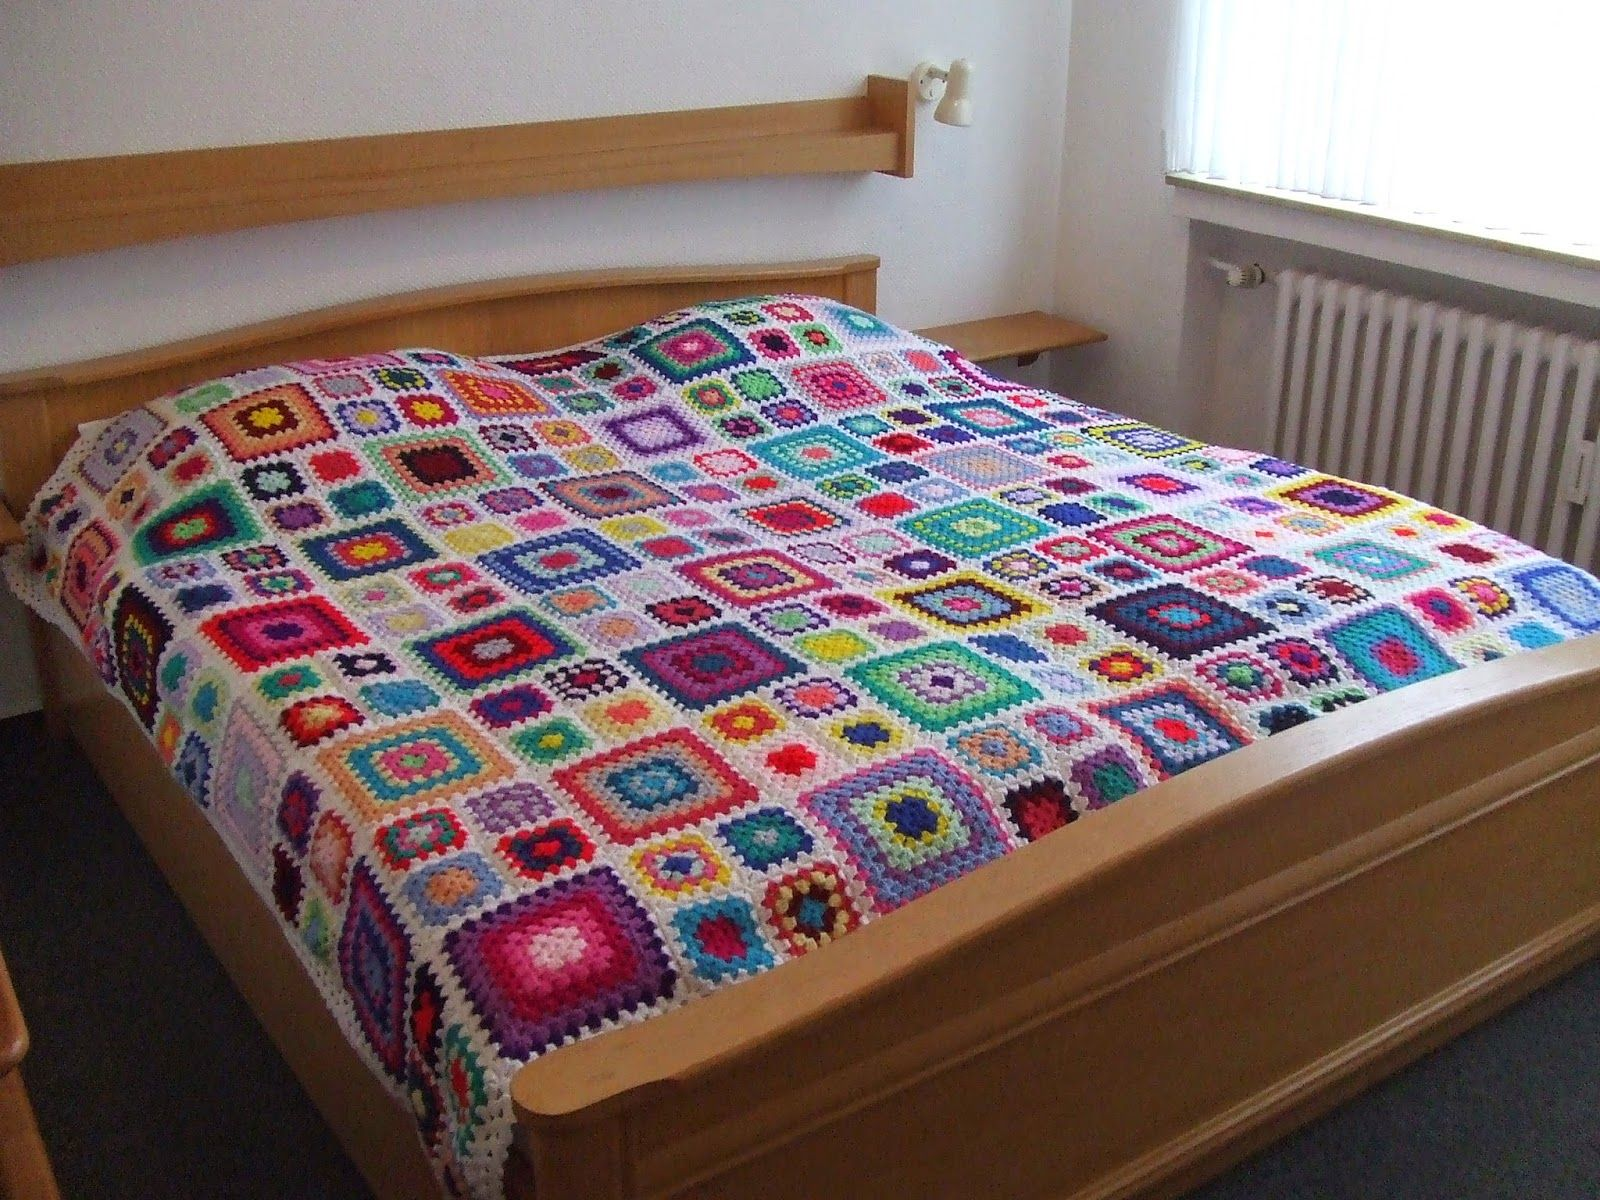 My World Of Crochet Multicolor Granny Square Bedspread Is Finished